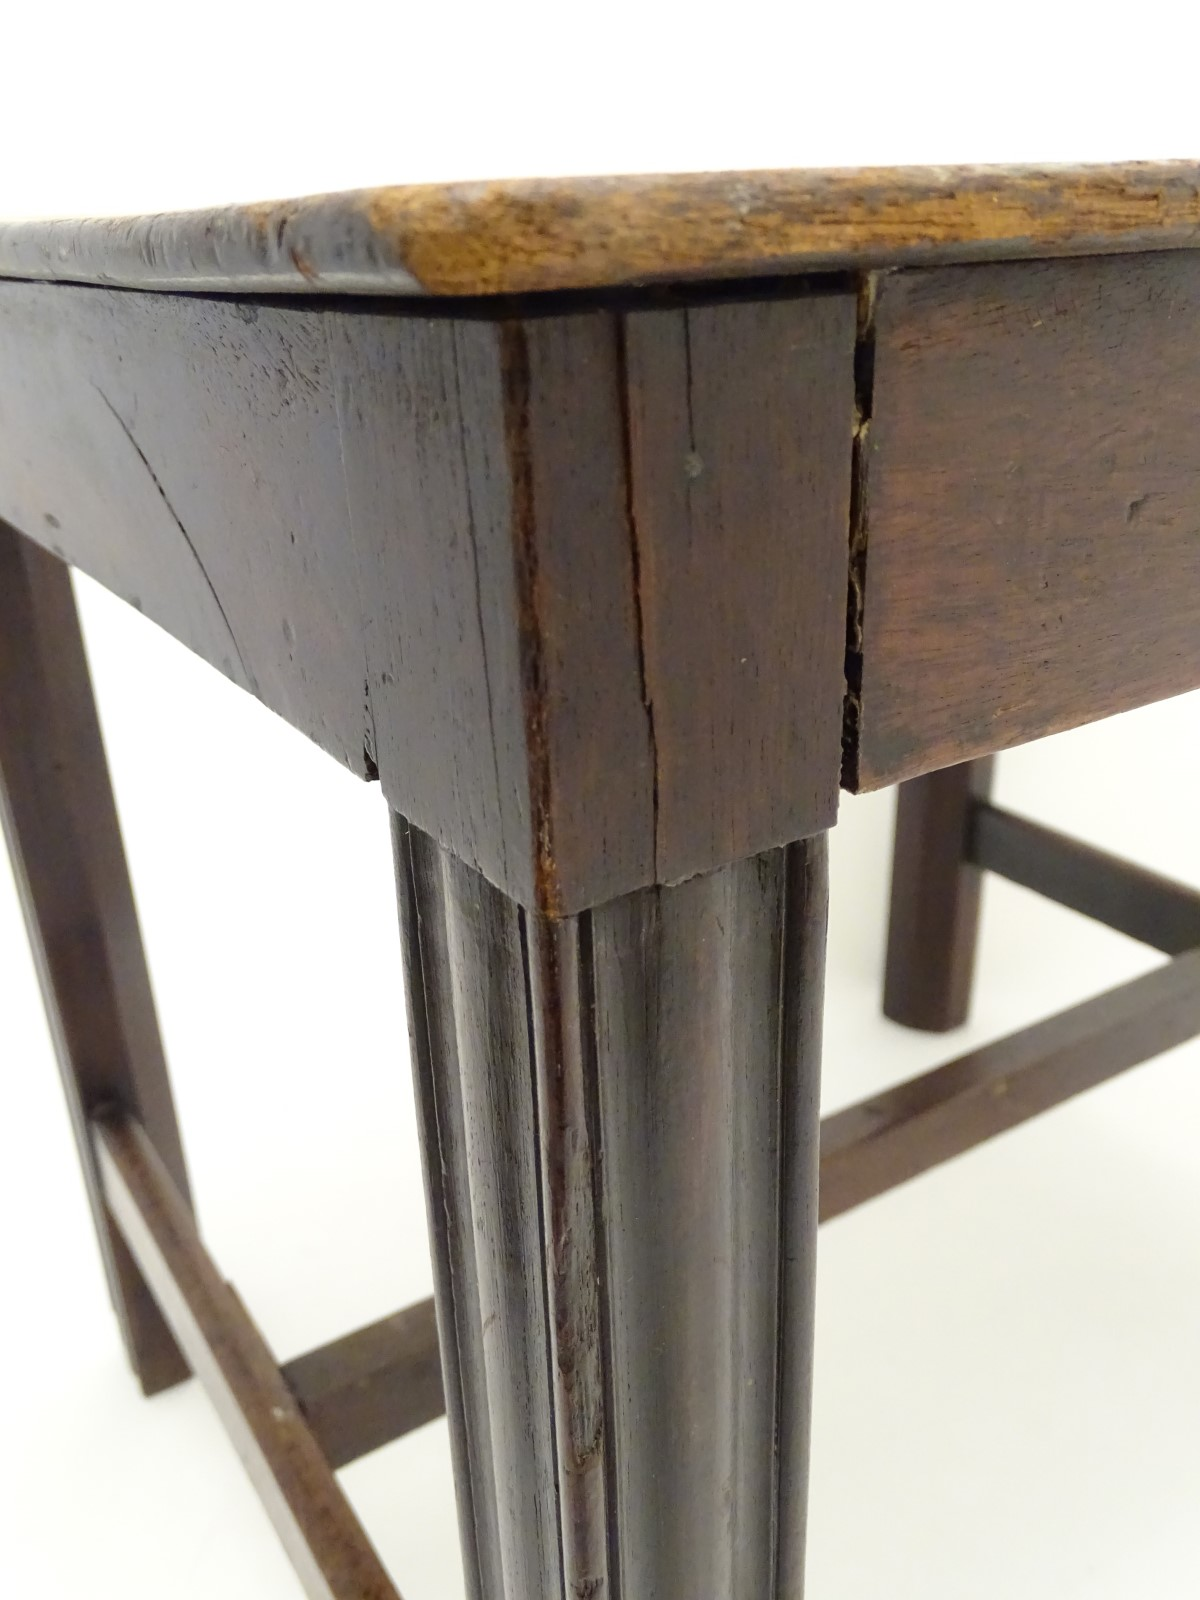 A late 18thC mahogany low table / stool with moulded legs and a chamfered frame, - Image 6 of 7